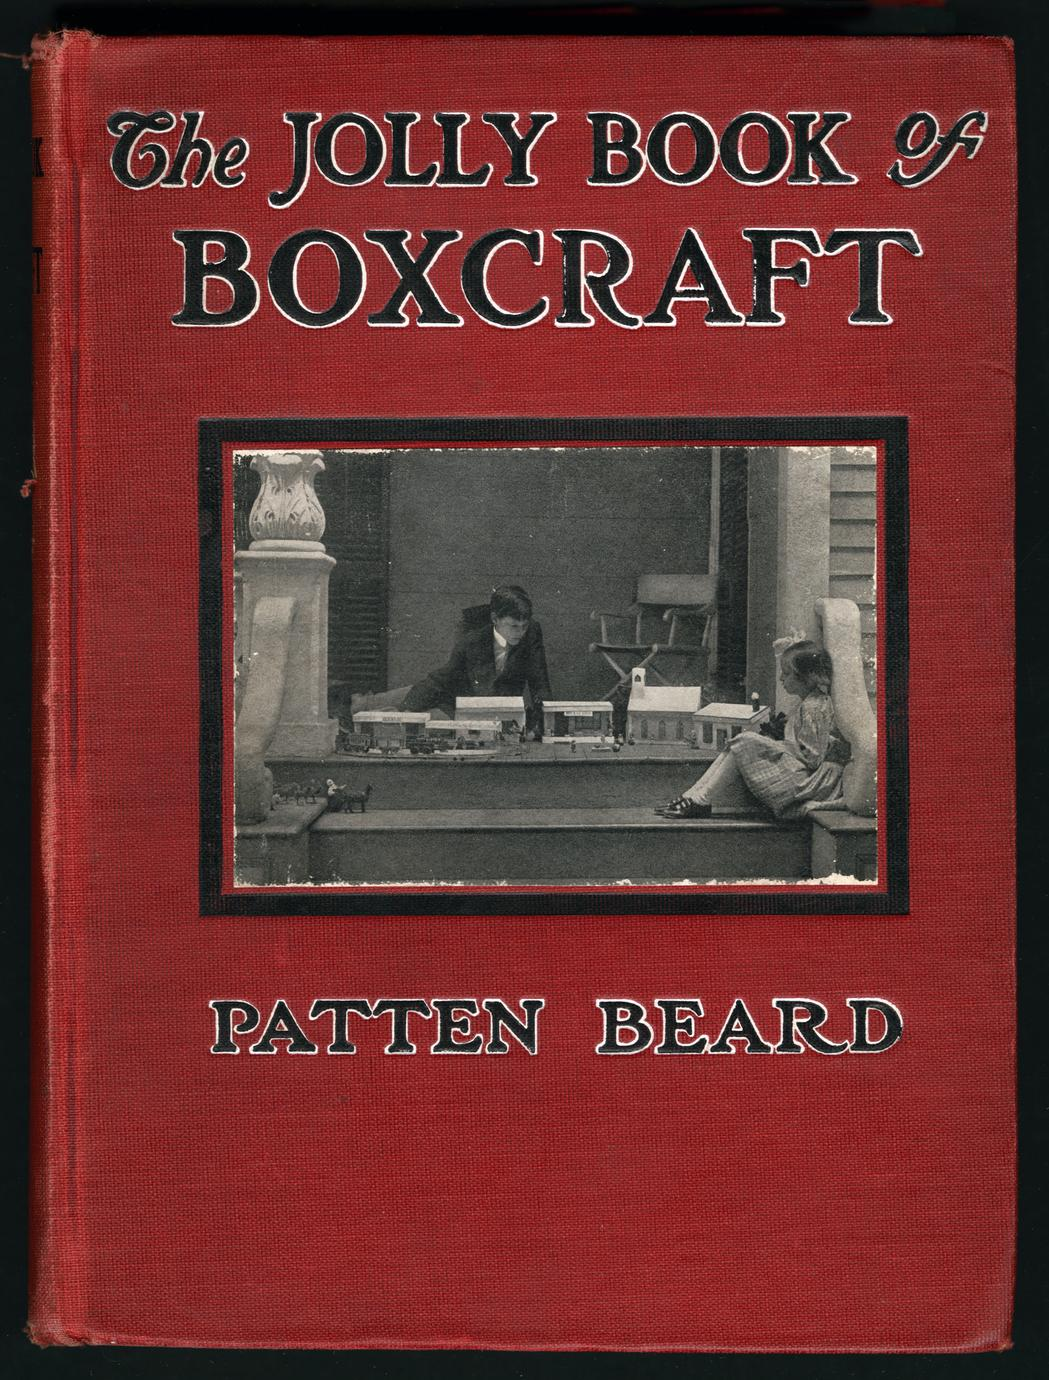 The jolly book of boxcraft (1 of 3)